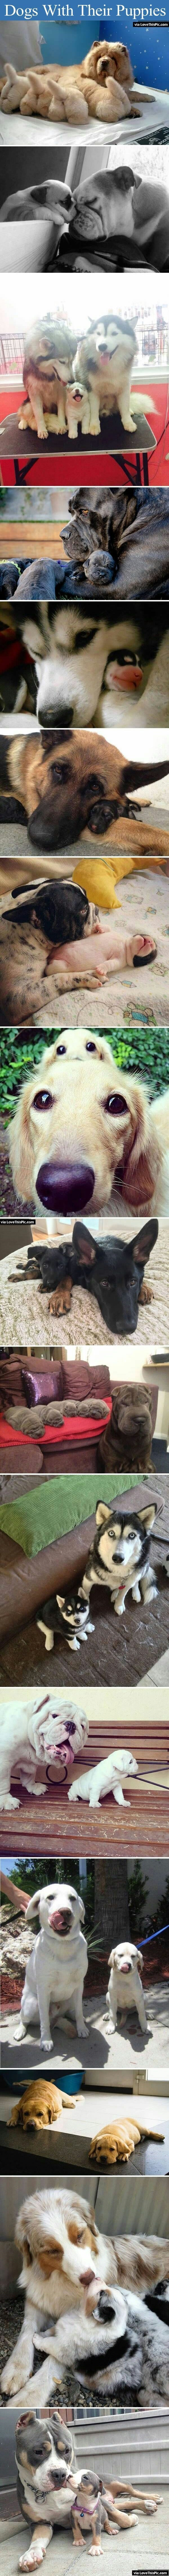 Dogs With Their Puppies cute animals cat cats adorable animal kittens pets kitten funny…...